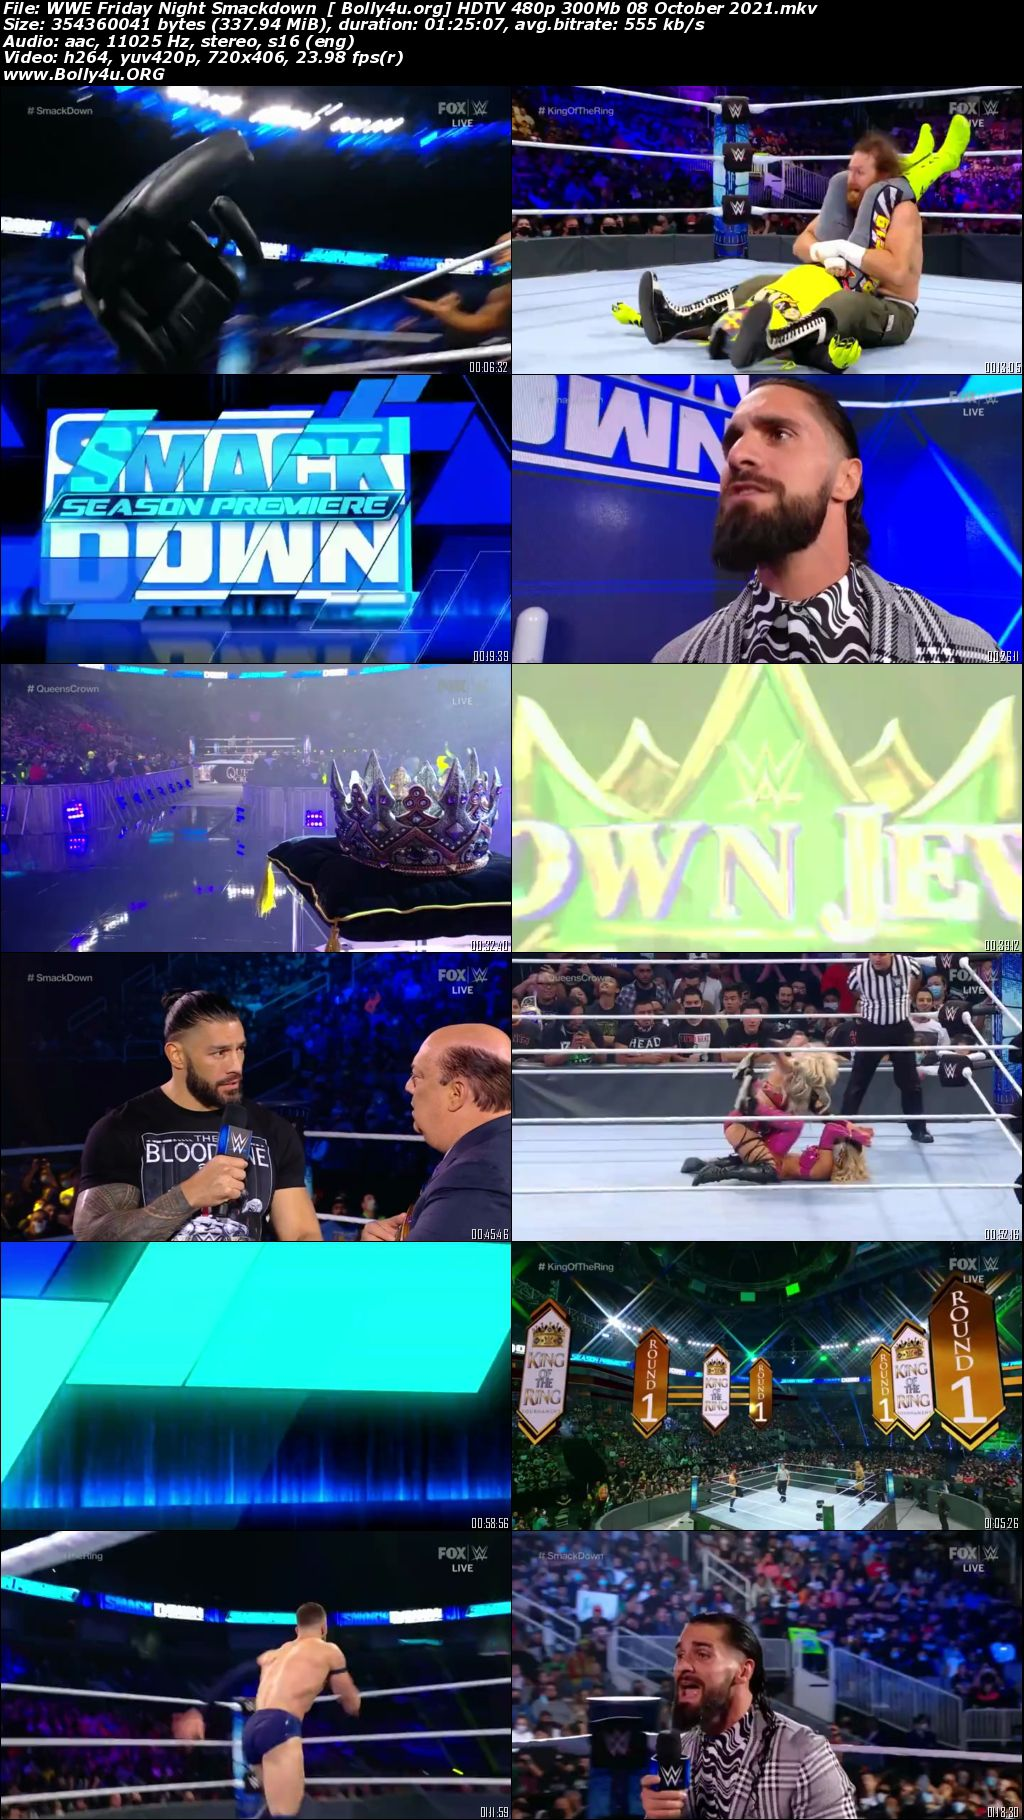 WWE Friday Night Smackdown HDTV 480p 300Mb 08 October 2021 Download